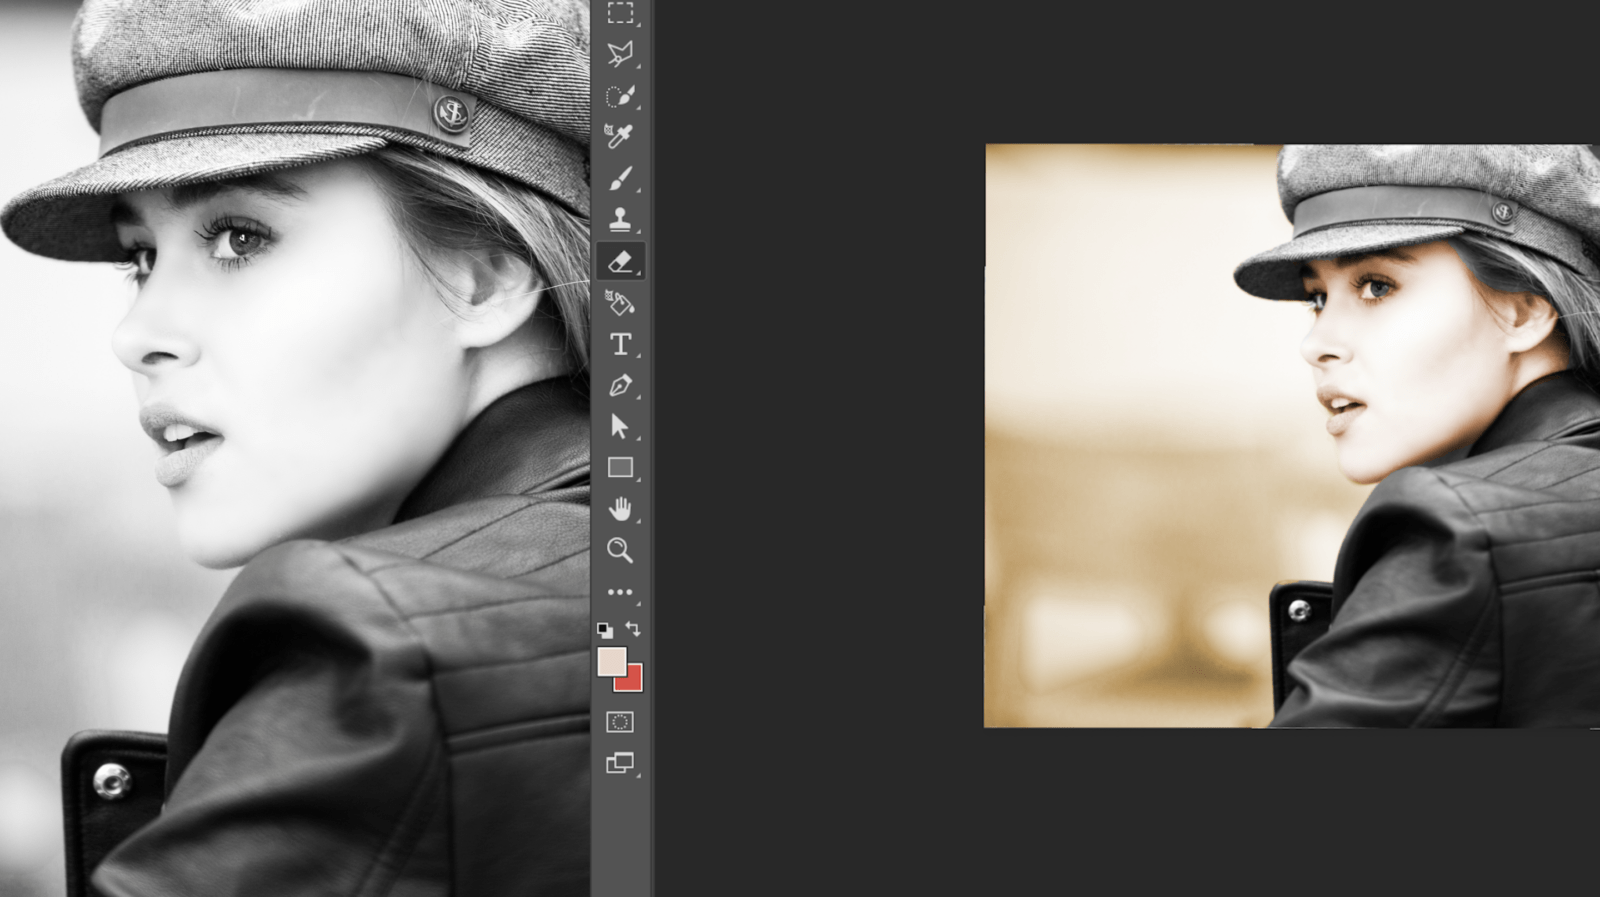 How to colorize black and white photos in photoshop